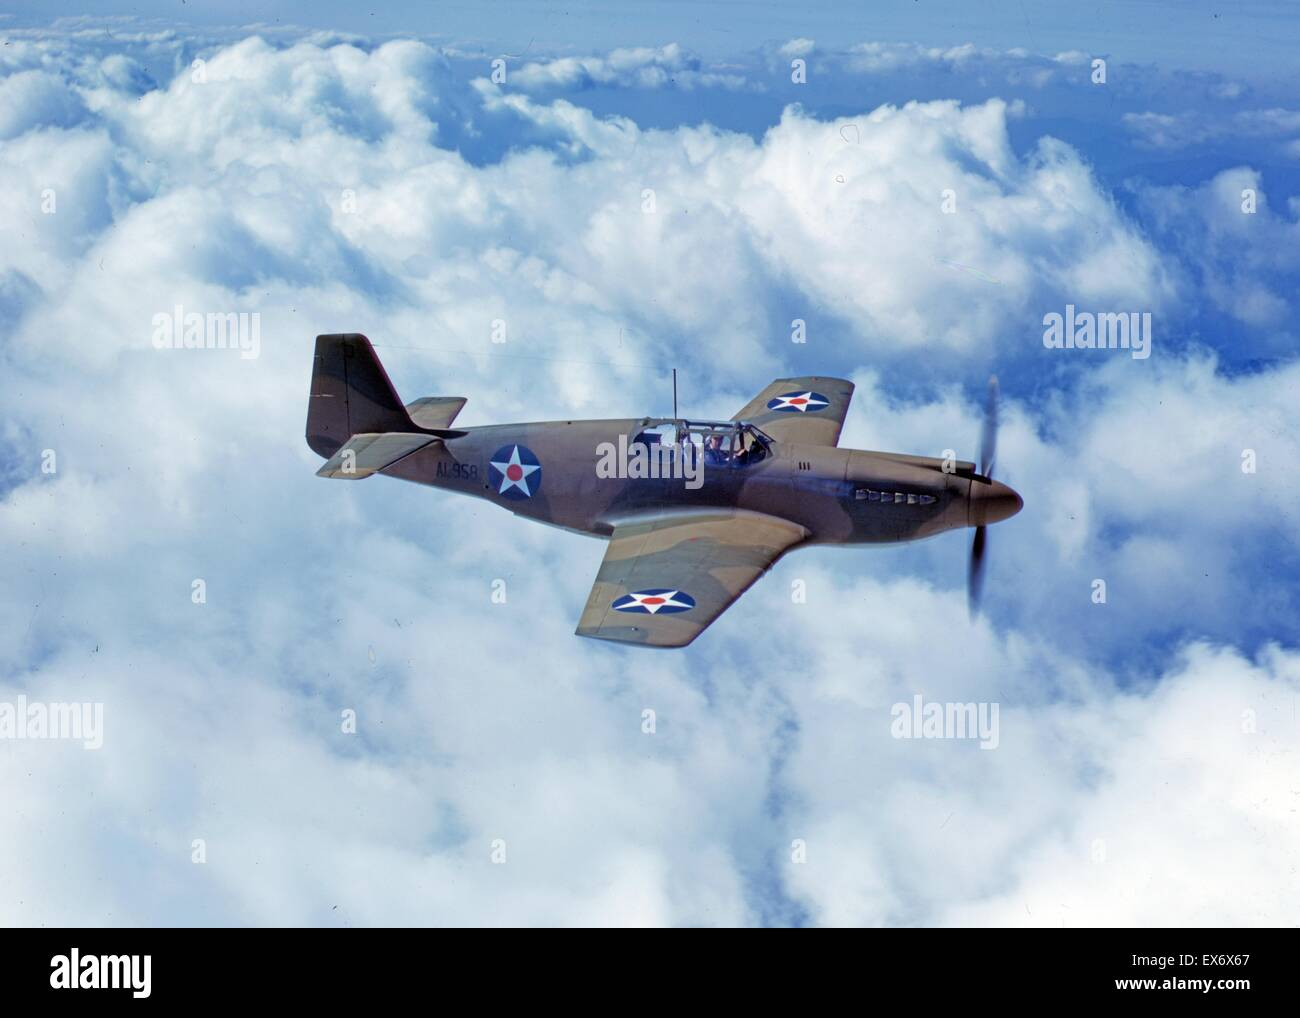 North American's P-51 Mustang Fighter is in service with Britain's Royal Air Force, N.A.A. Inc., Inglewood, - Stock Image